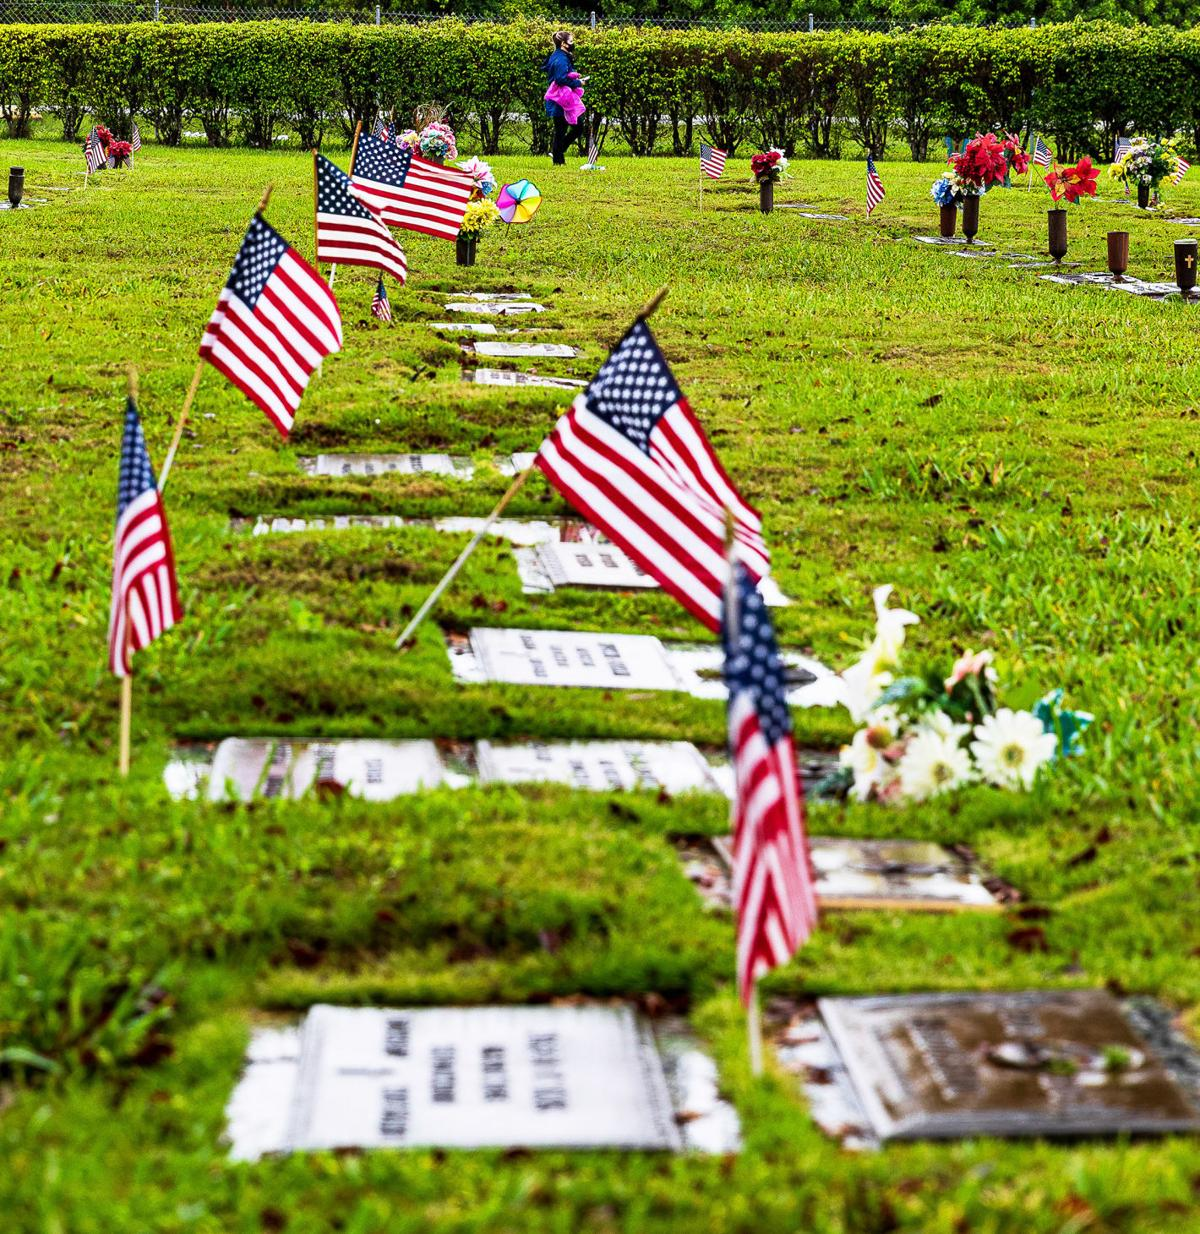 On Memorial Day flags adorned the graves of  Veterans from all of America's wars.